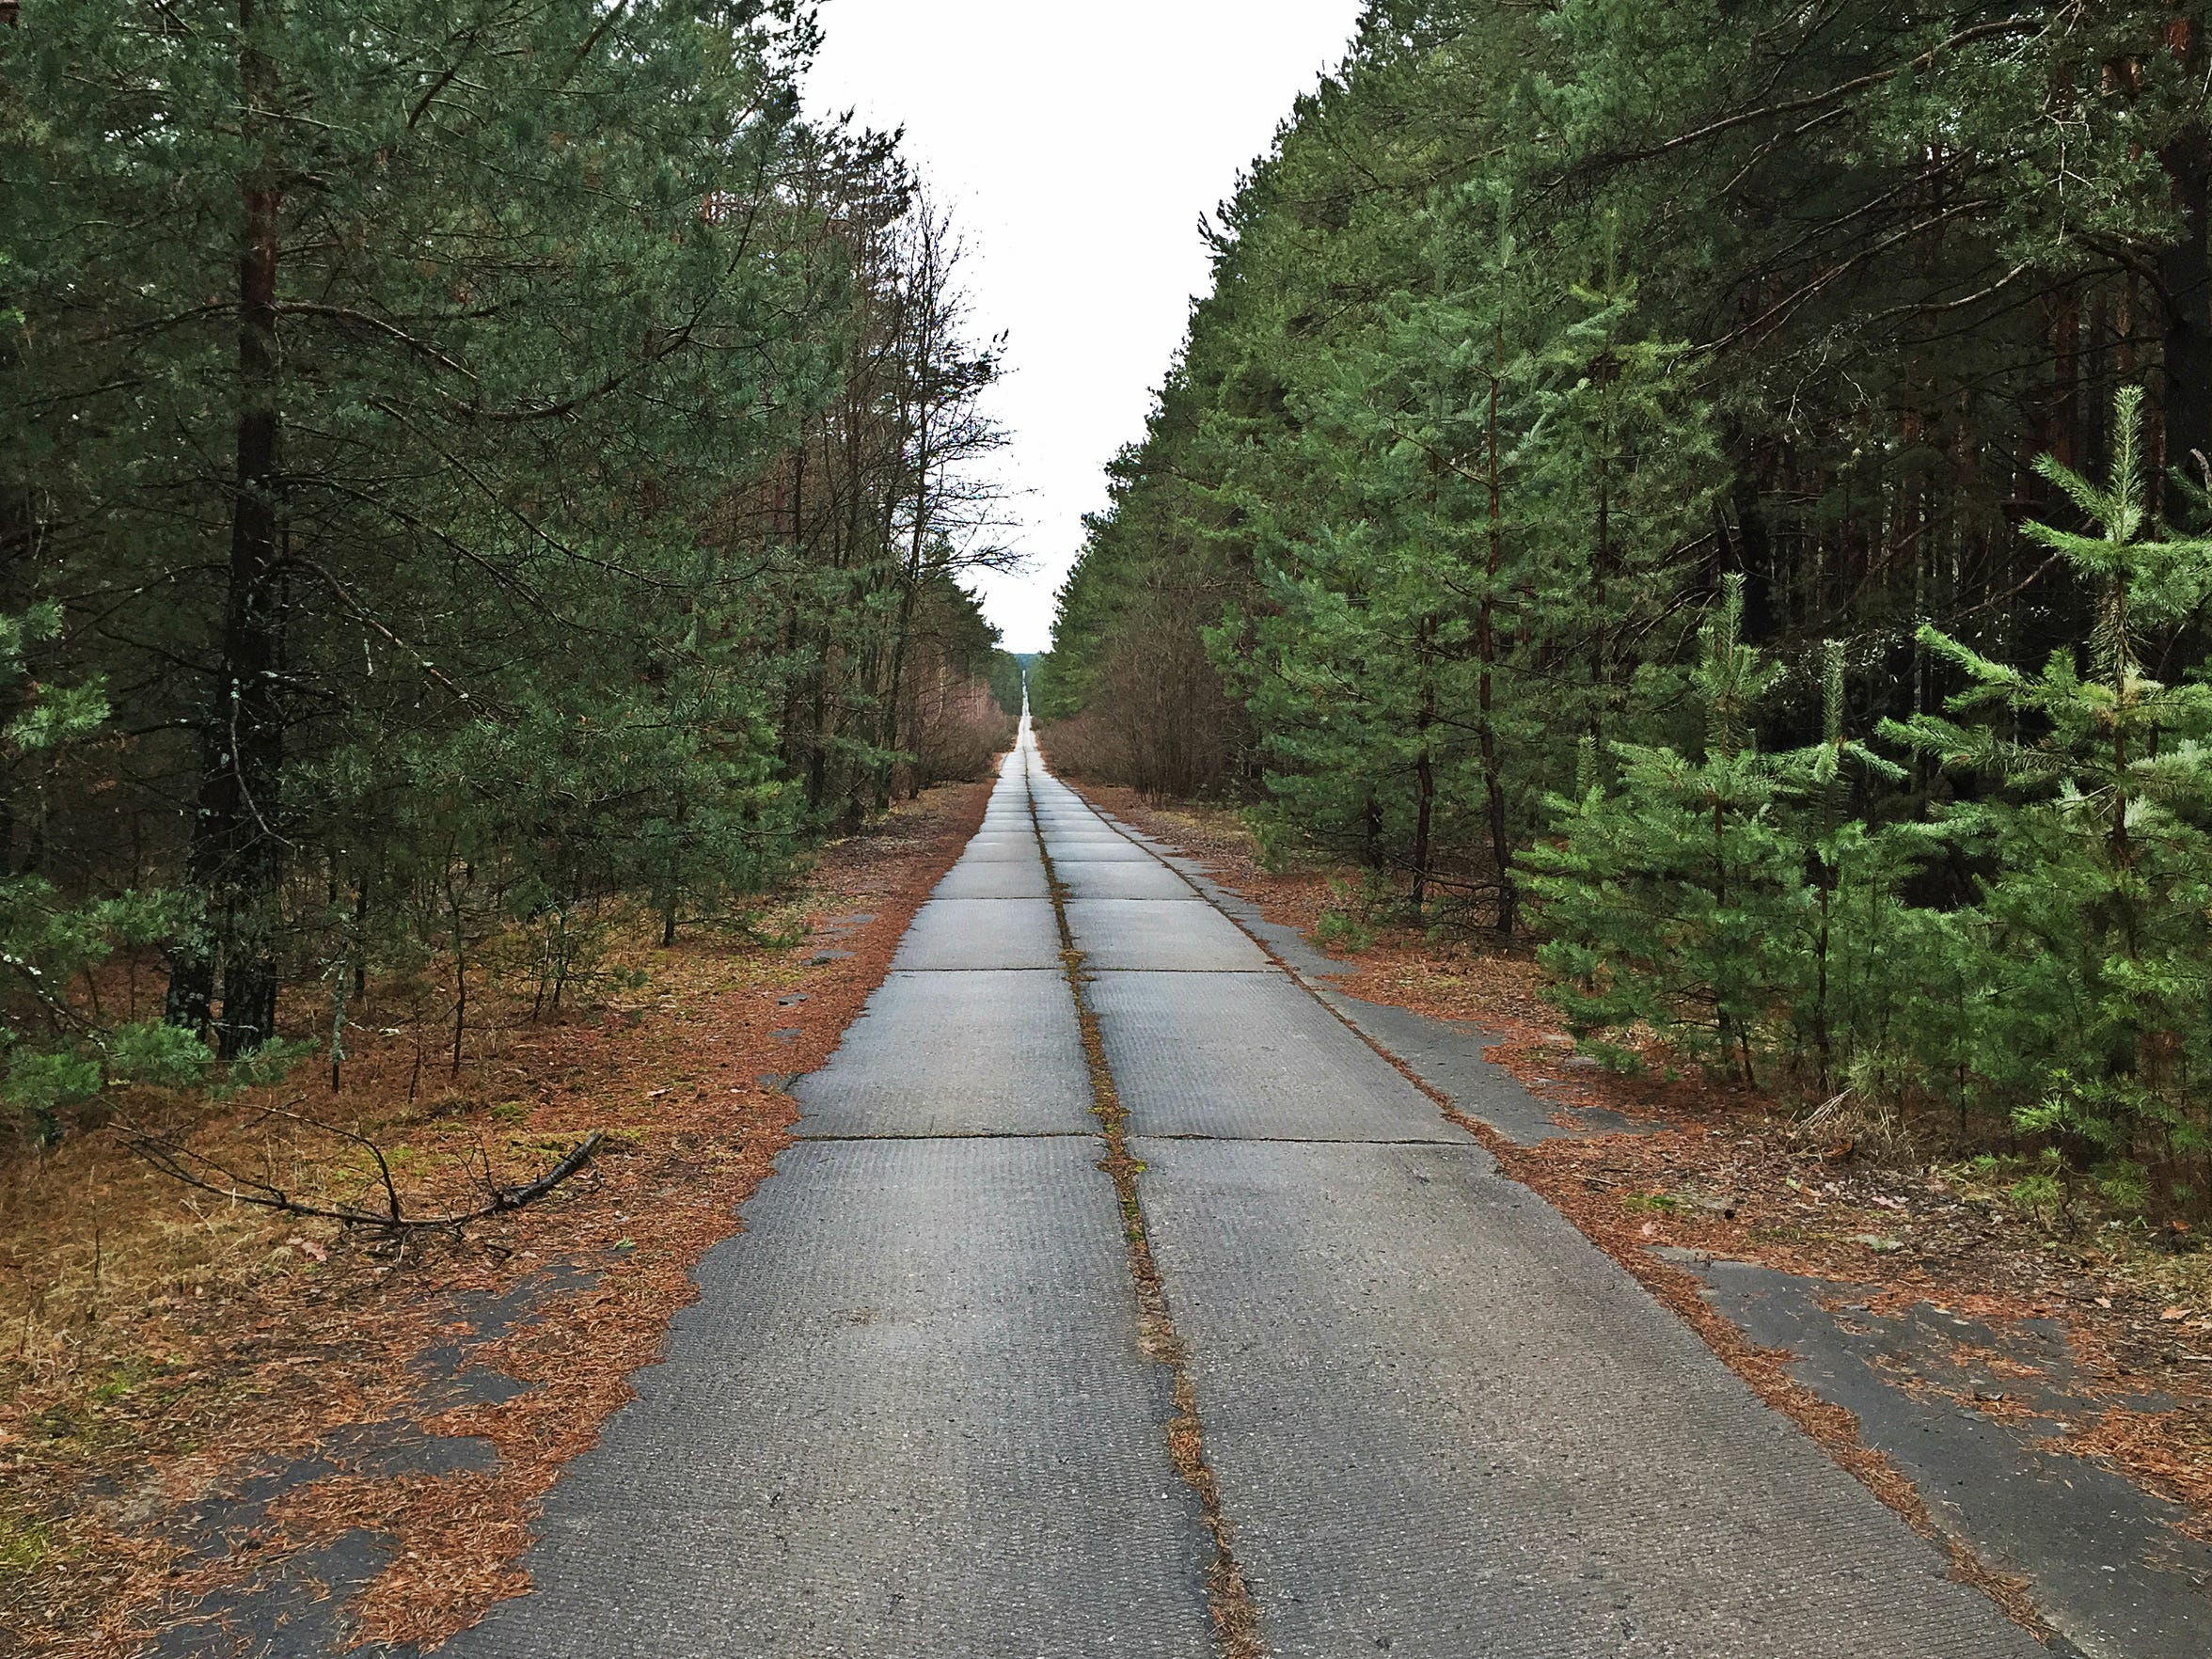 A view of a road in Ukraine's Chernobyl Exclusion Zone.